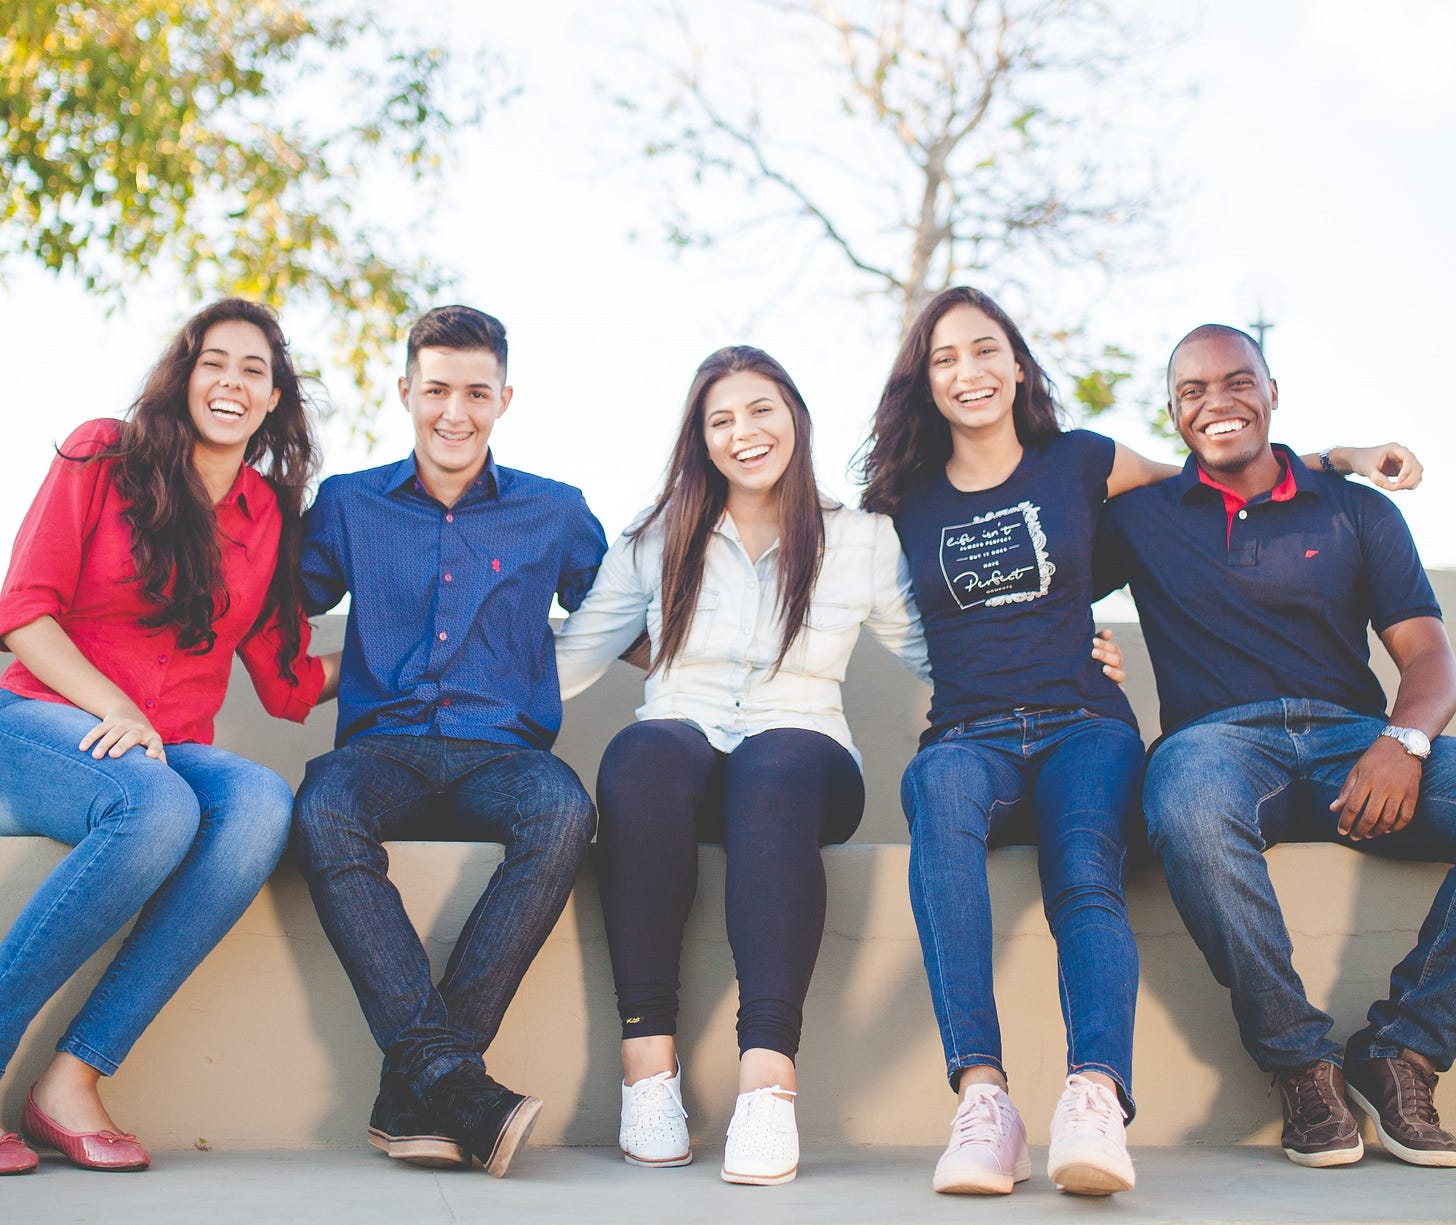 Image of a diverse group of five smiling friends sitting side-by-side on a sunny day with their arms around each other.